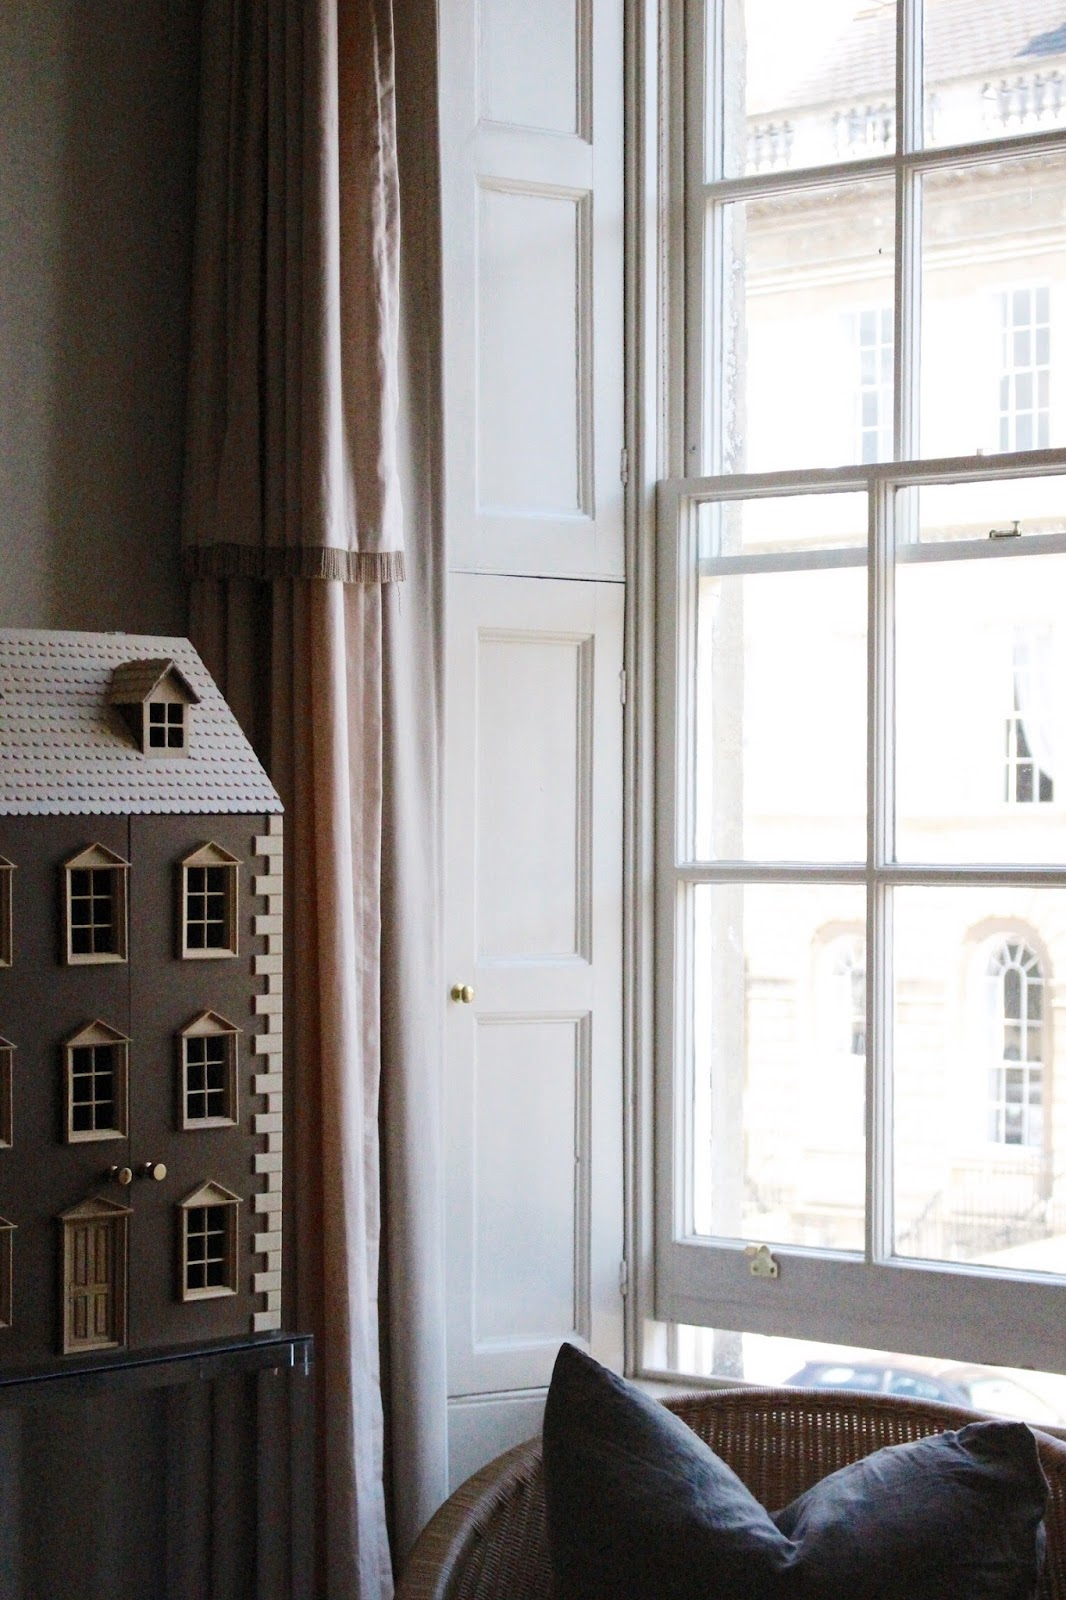 Dolls House in Luxury Boutique Hotel